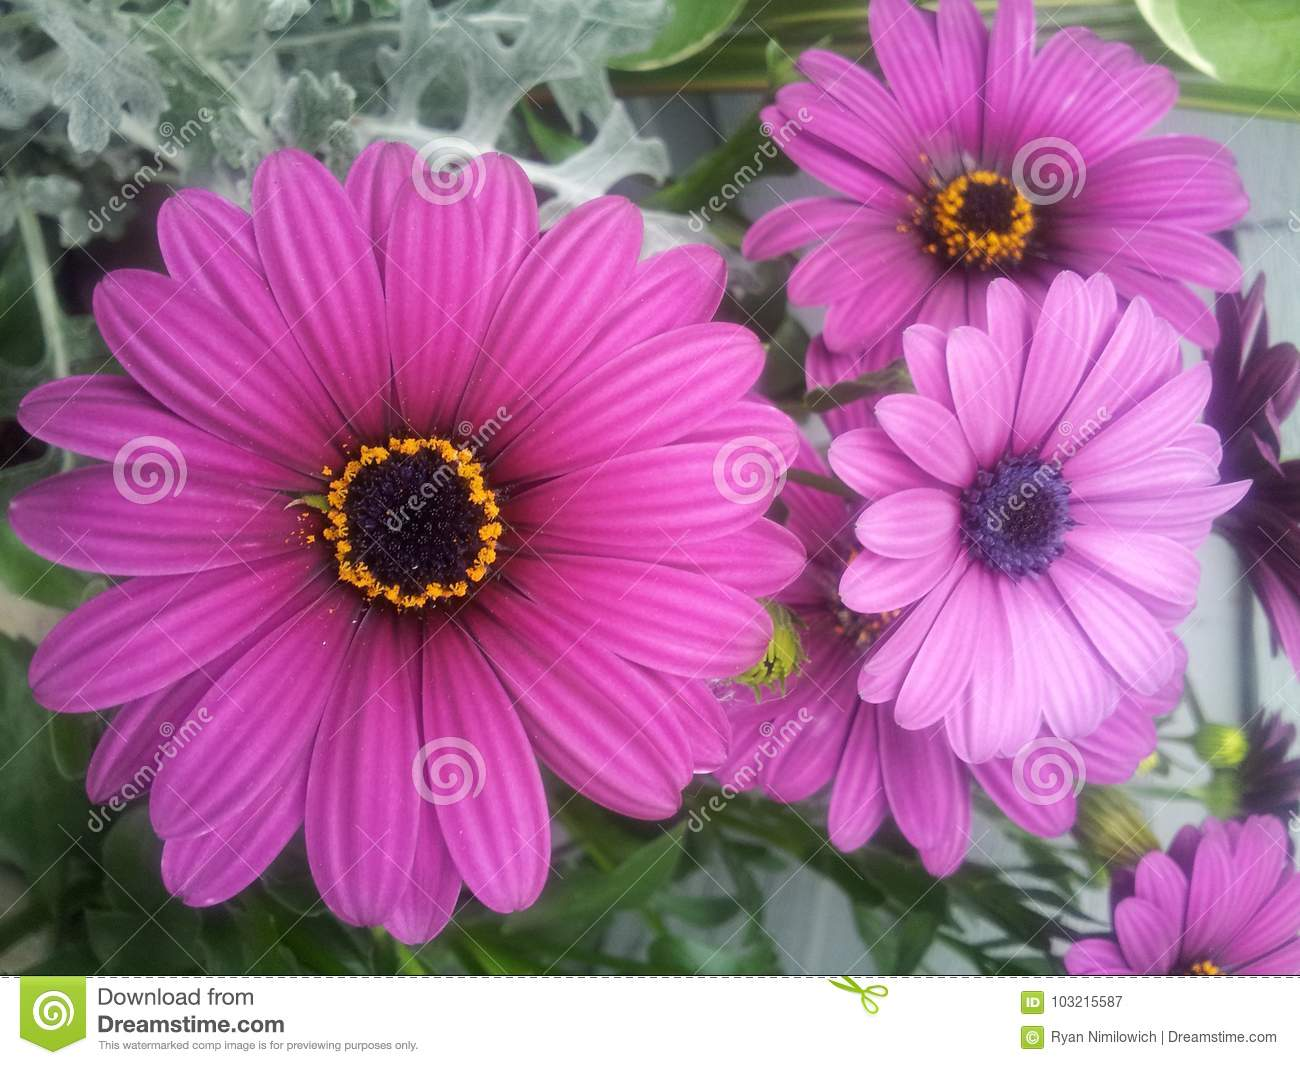 Purple daisy flowers stock image image of daisy green 103215587 download purple daisy flowers stock image image of daisy green 103215587 izmirmasajfo